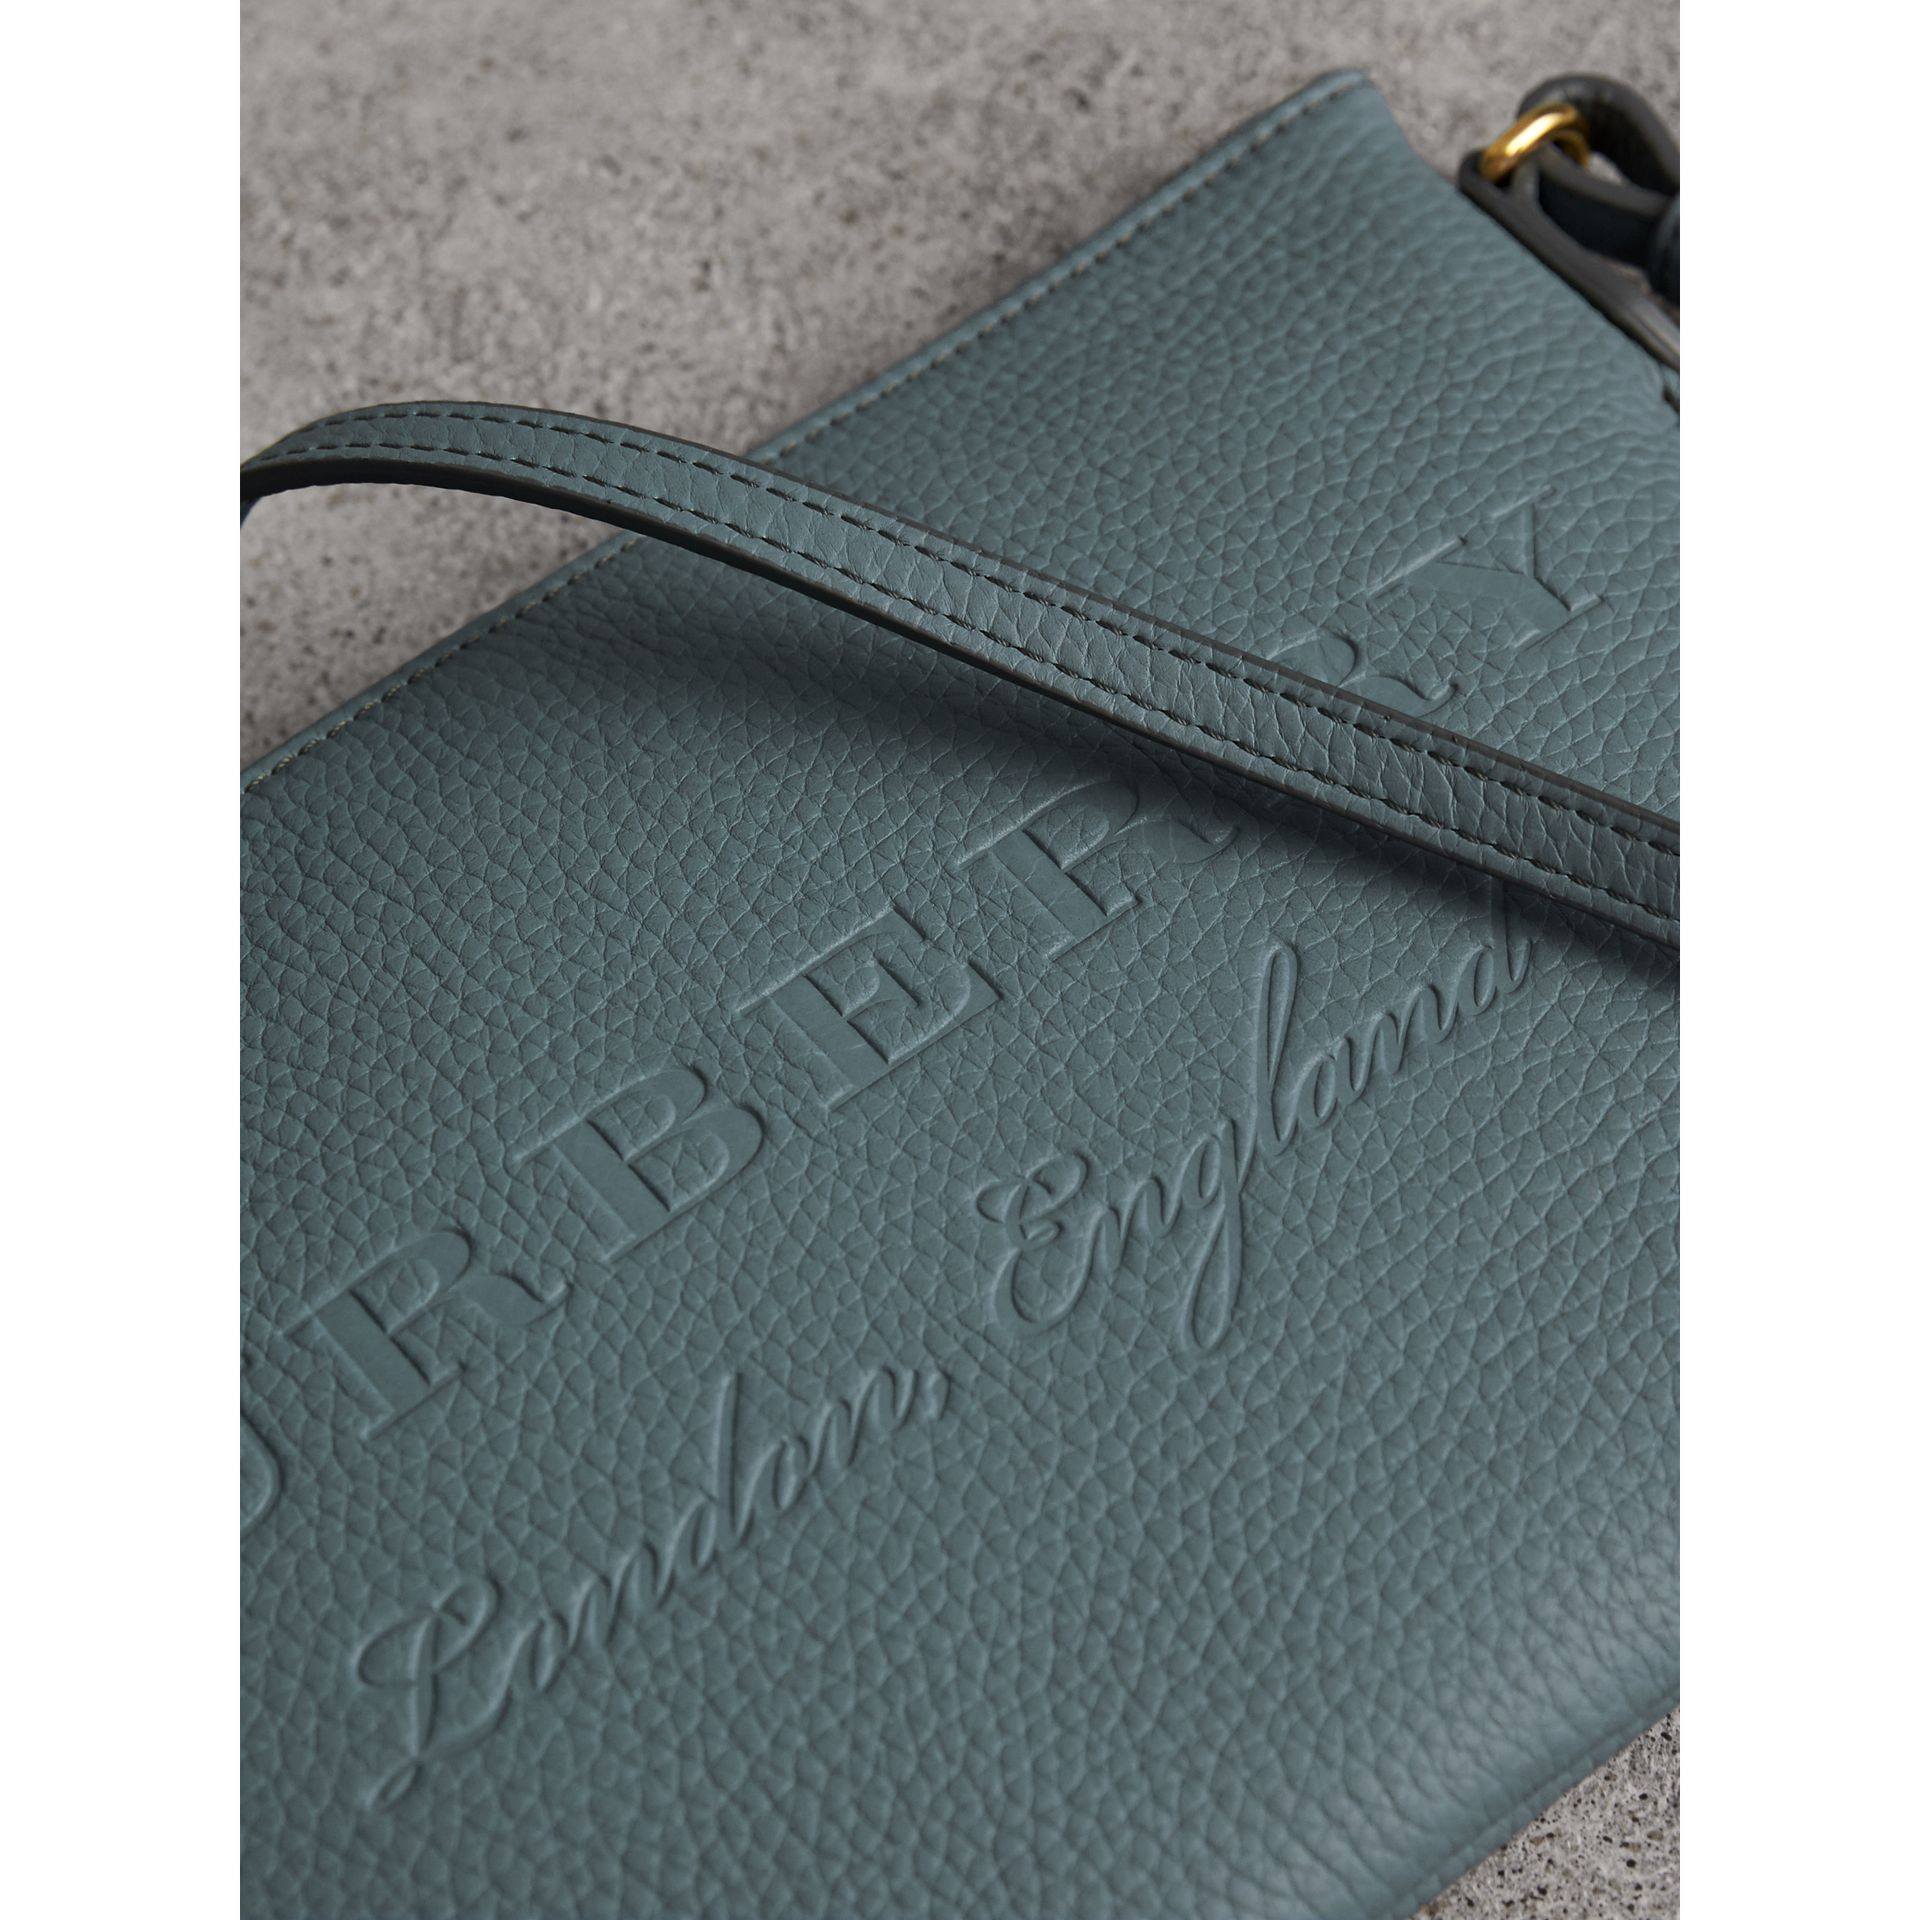 Embossed Leather Clutch Bag in Dusty Teal Blue - Women | Burberry United States - gallery image 1